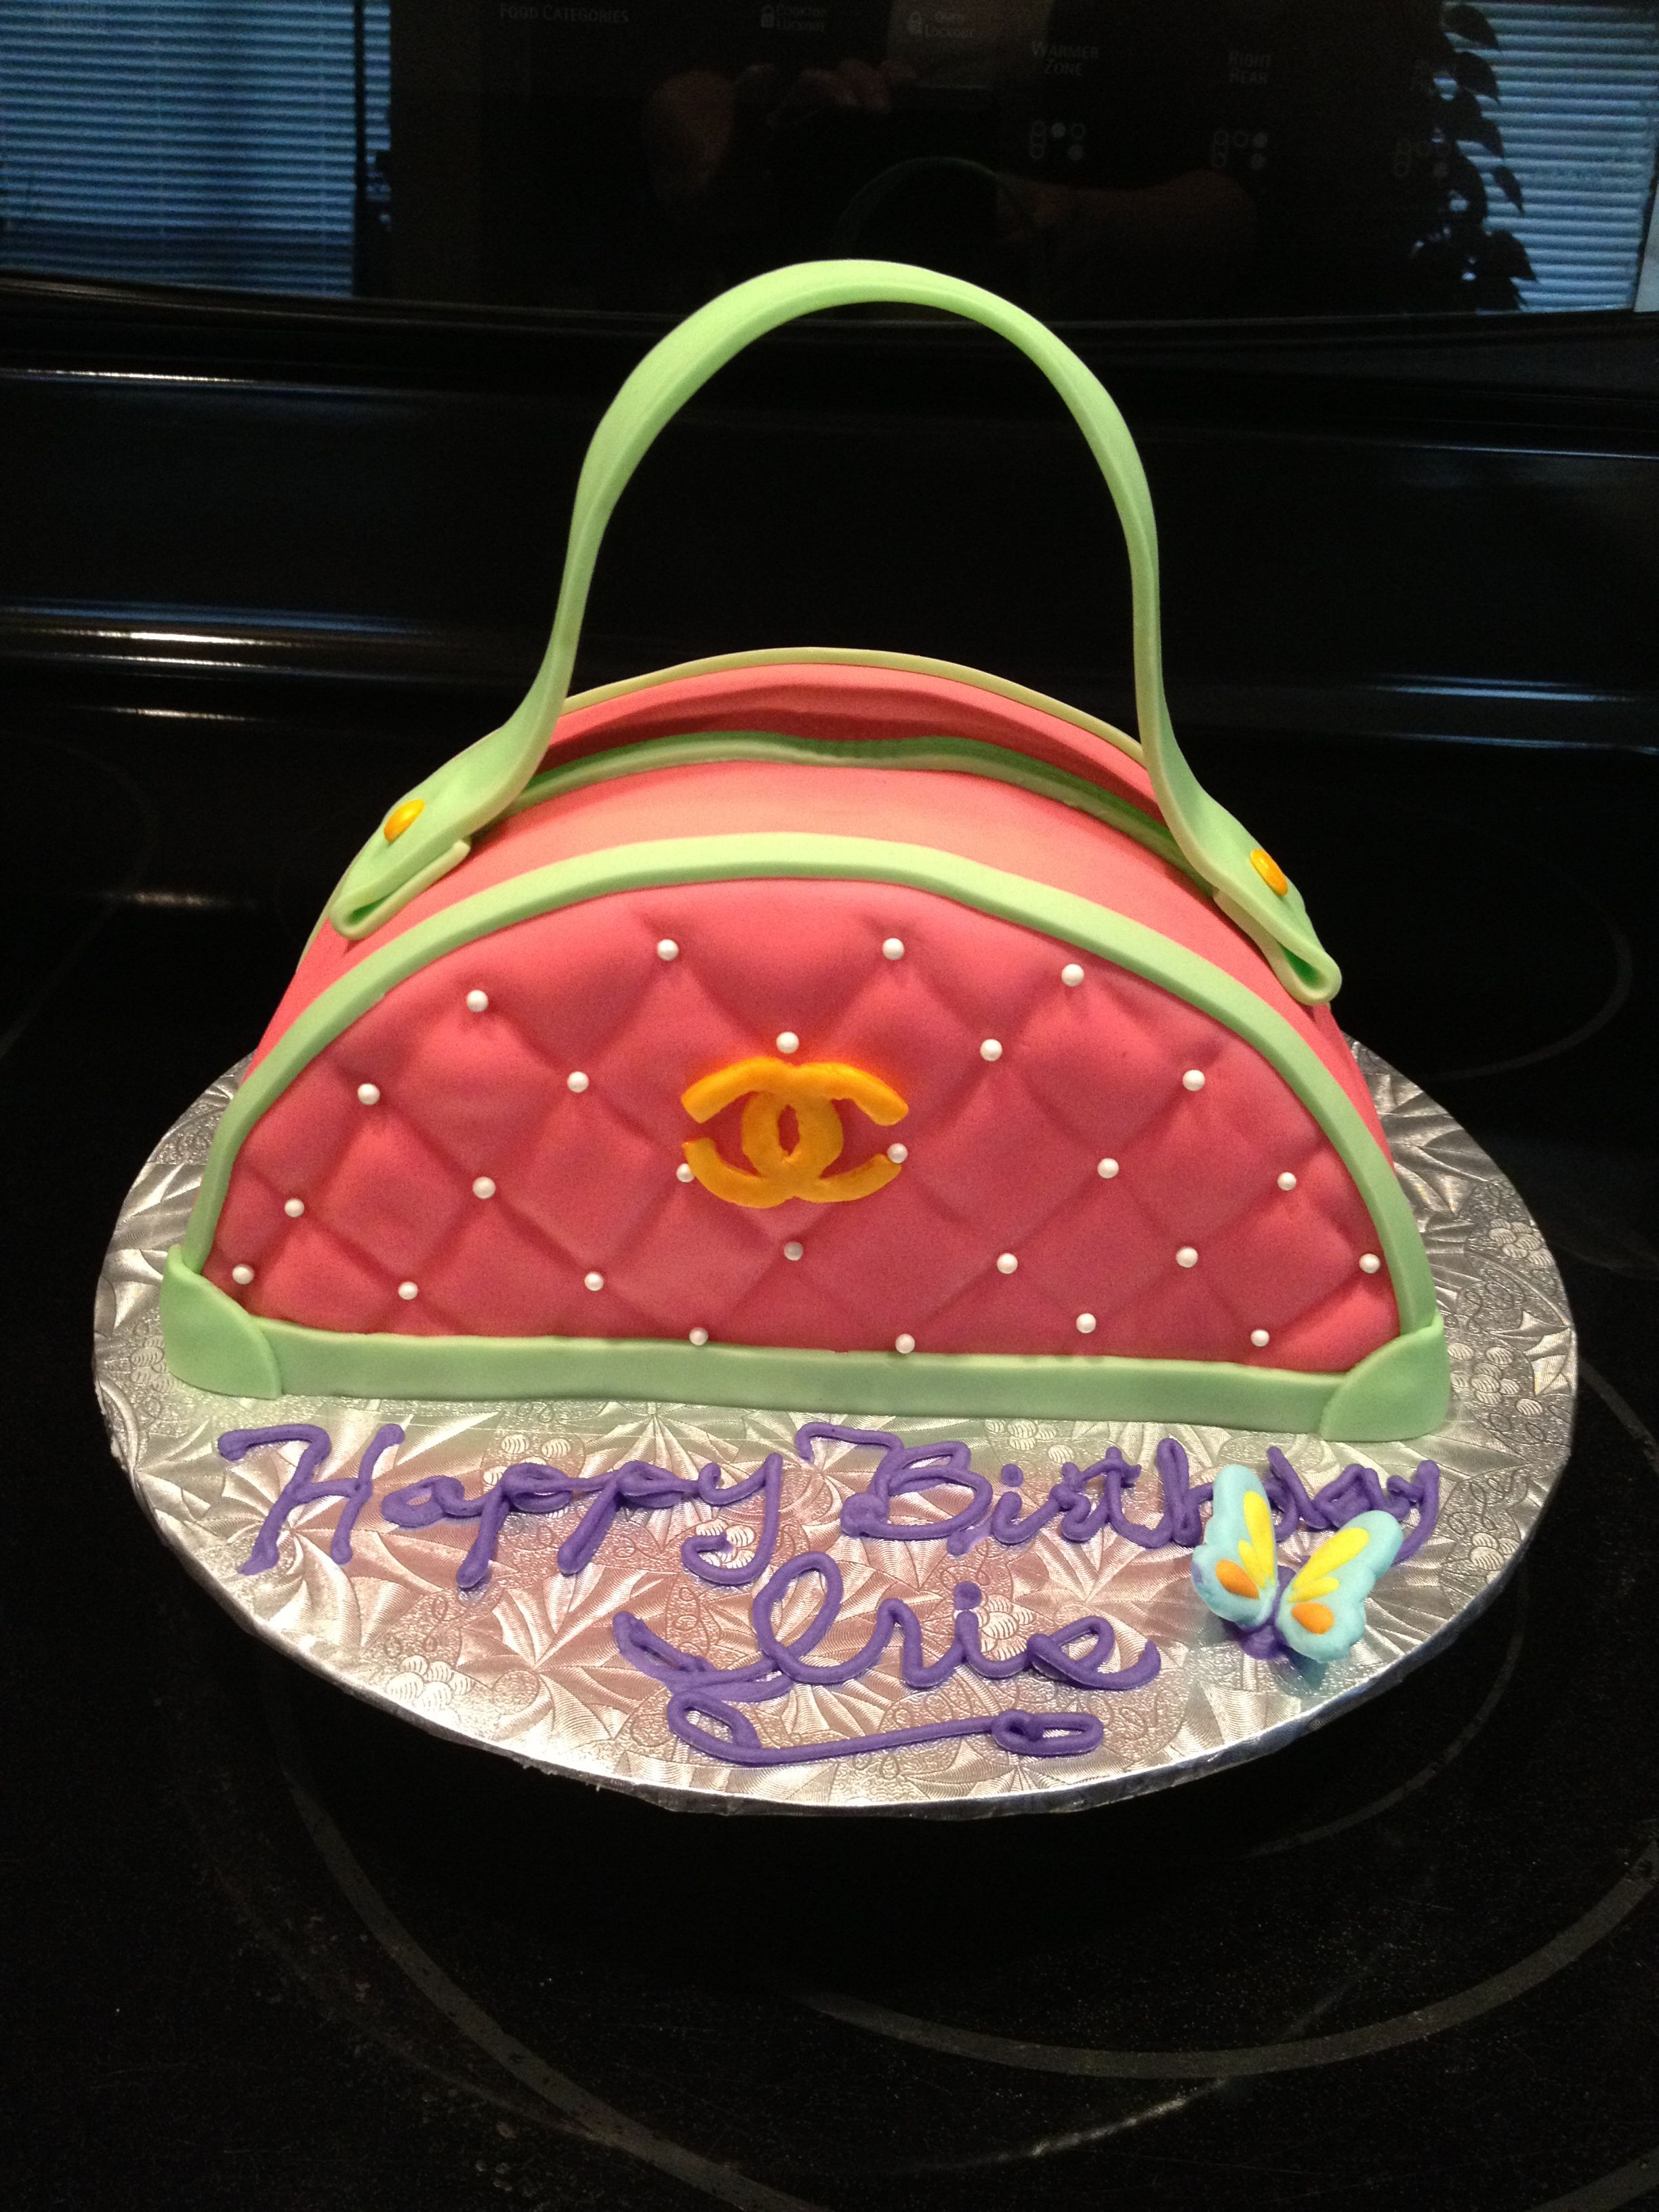 Purse birthday cake (With images) Personalized cakes